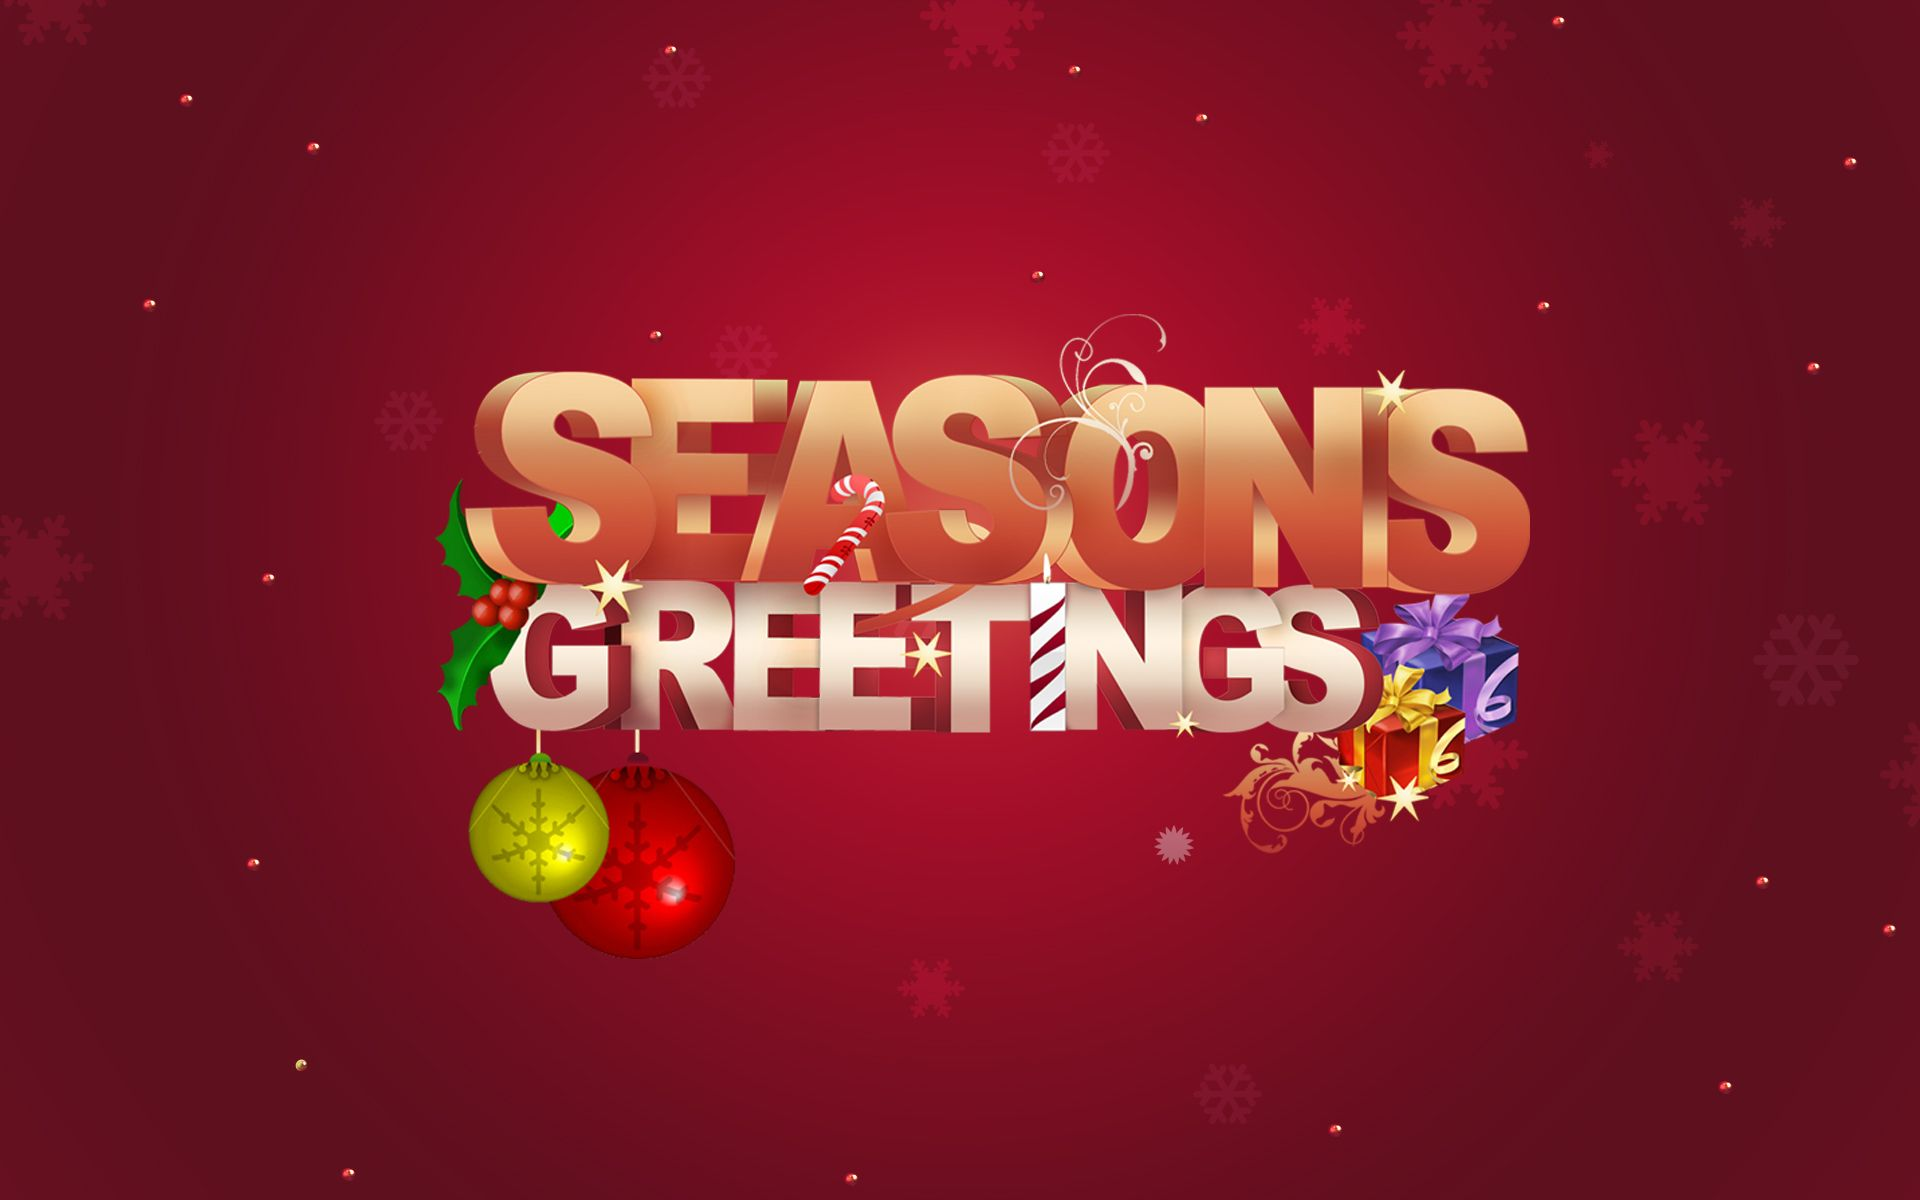 Seasons Greetings Images Yahoo Image Search Results Holiday